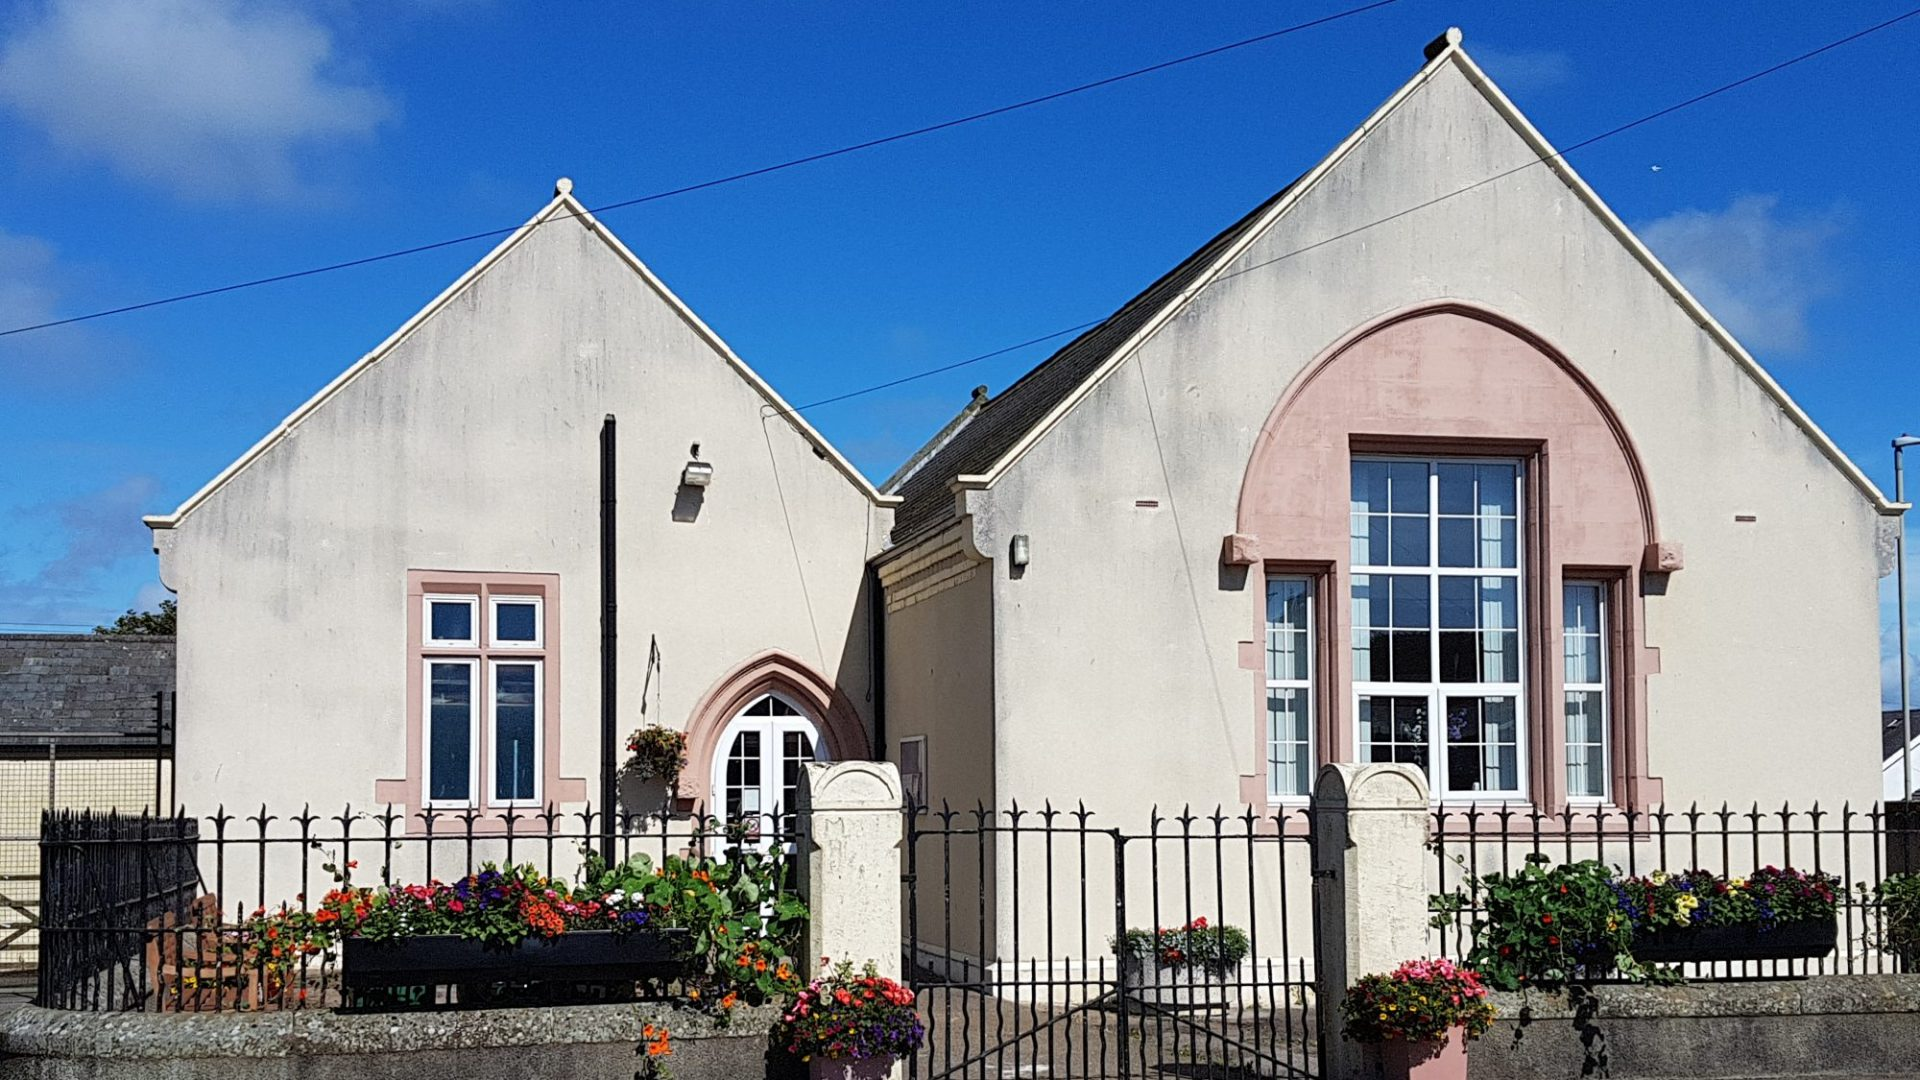 Silloth Community Hall